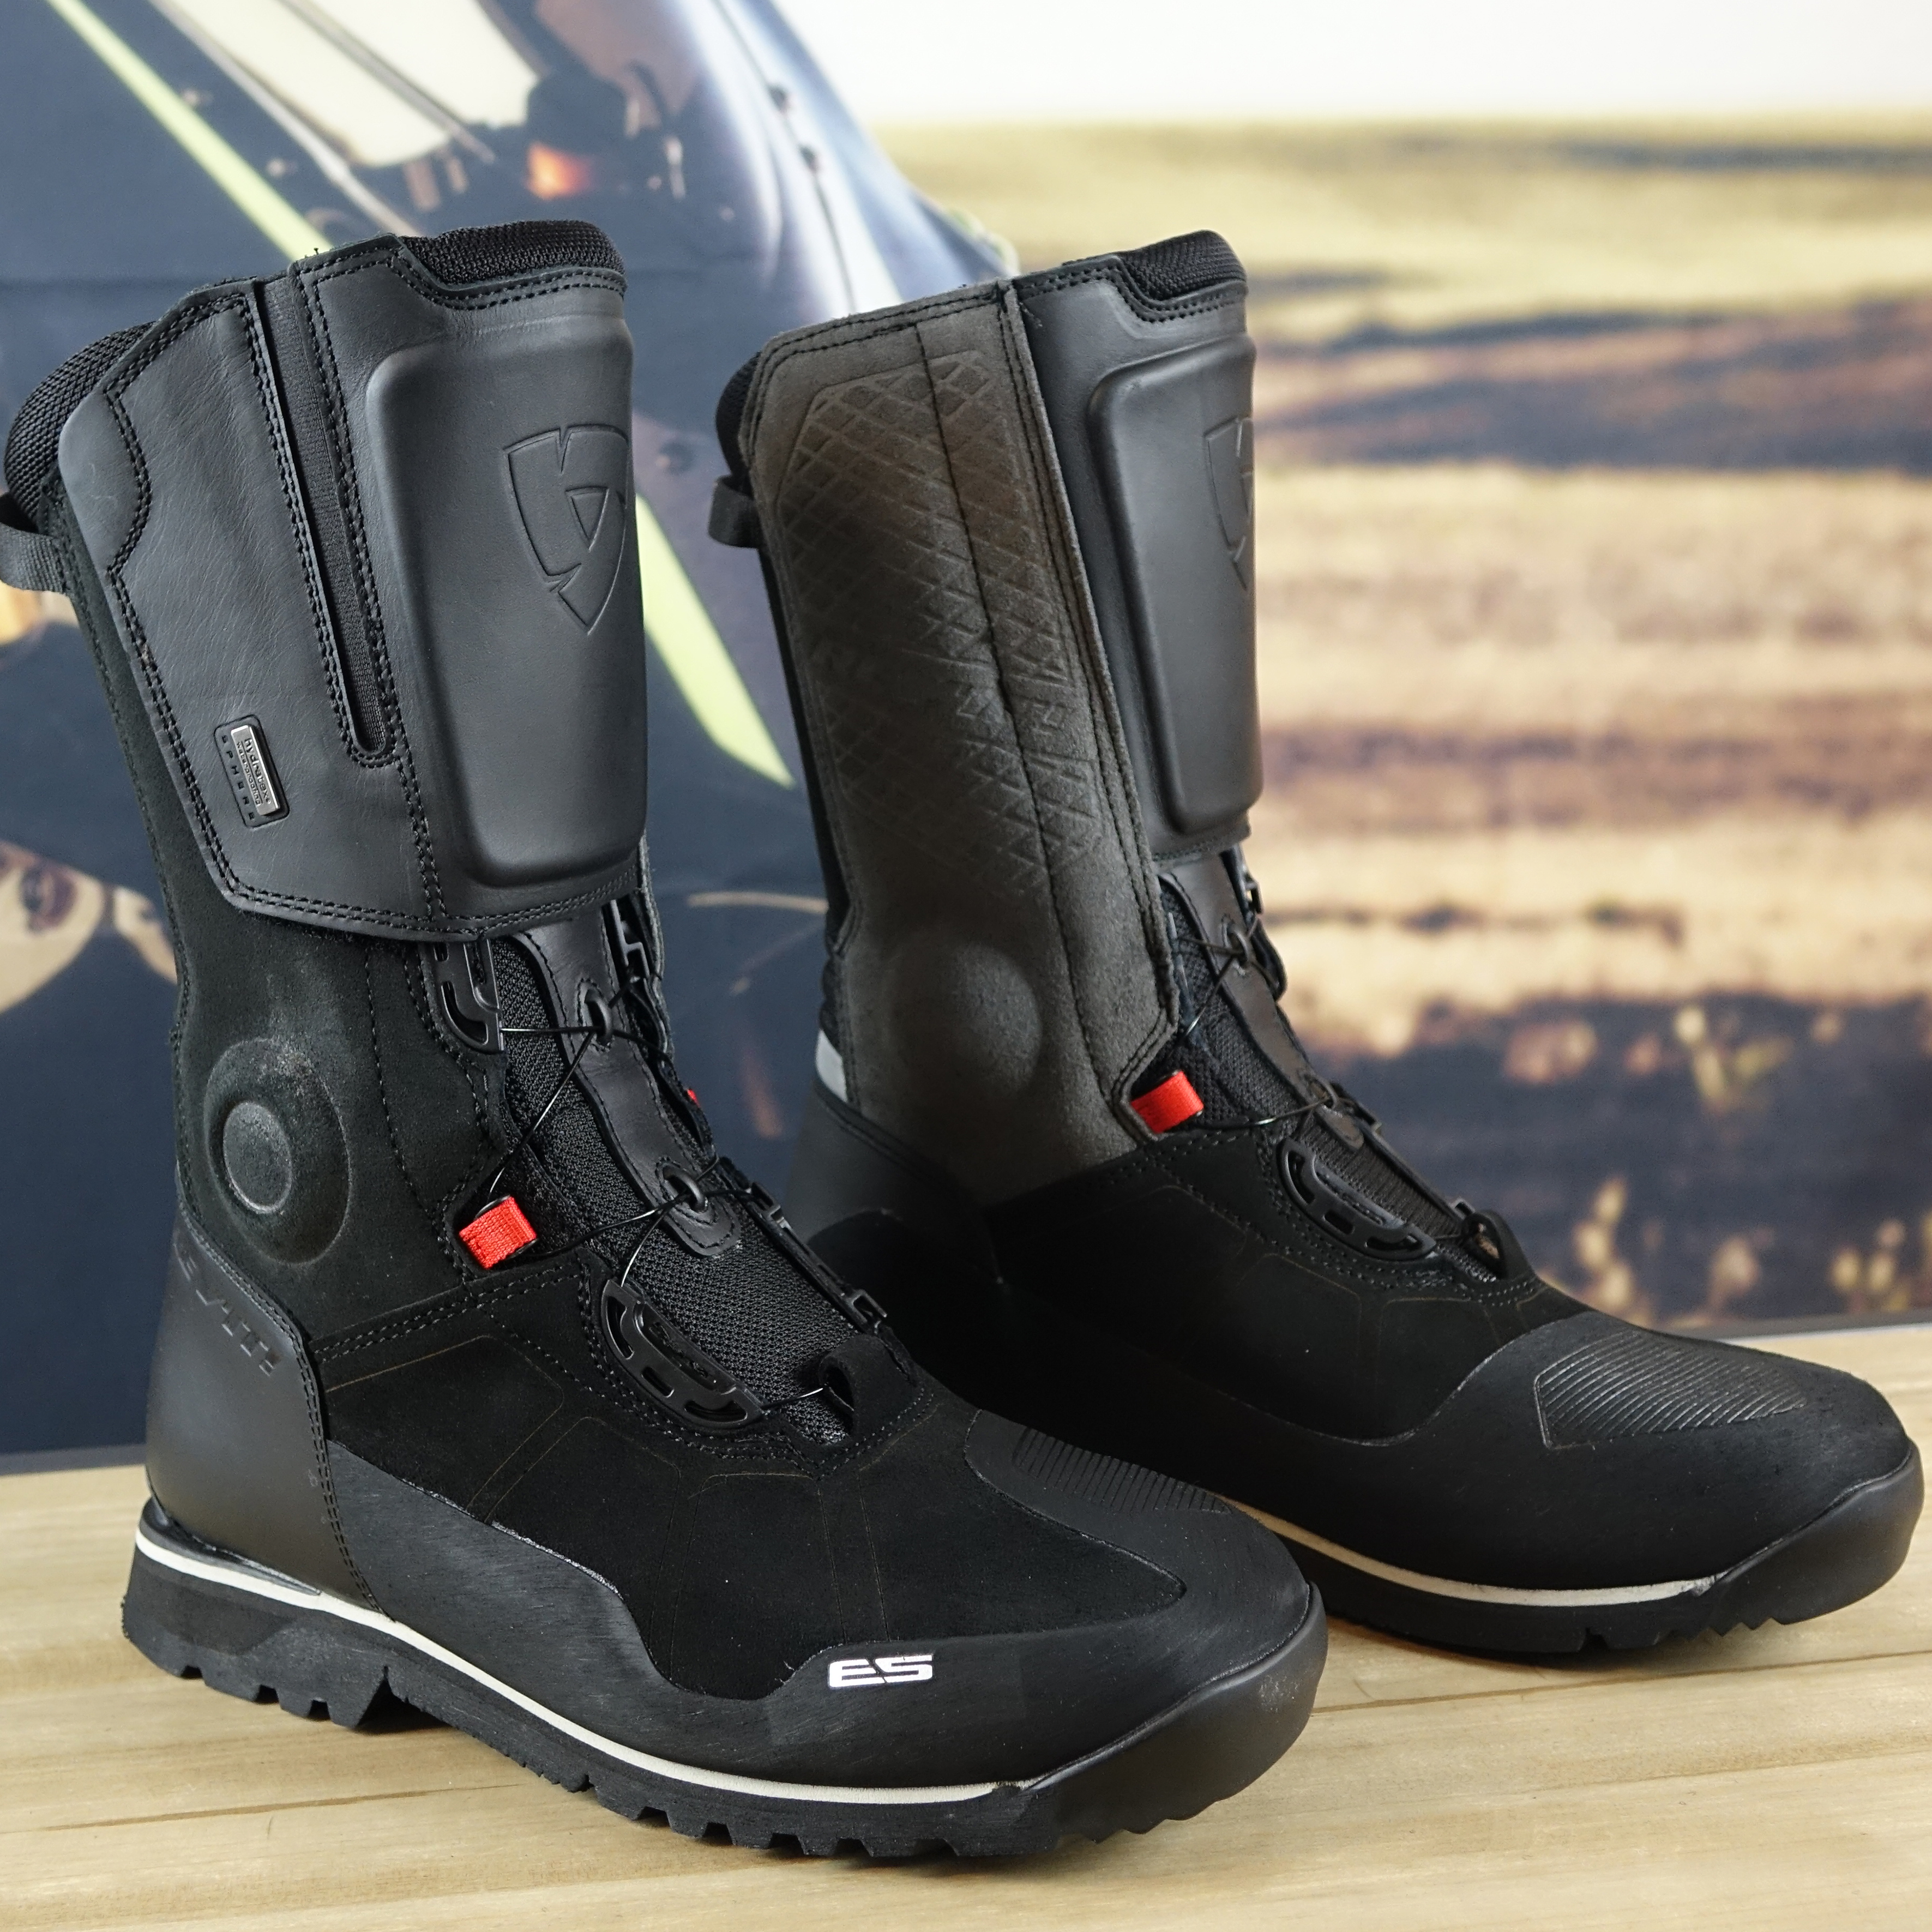 Revit Discovery Revit Stiefel Stiefel Stiefel Discovery H2o H2o Revit Discovery KlF1JTc